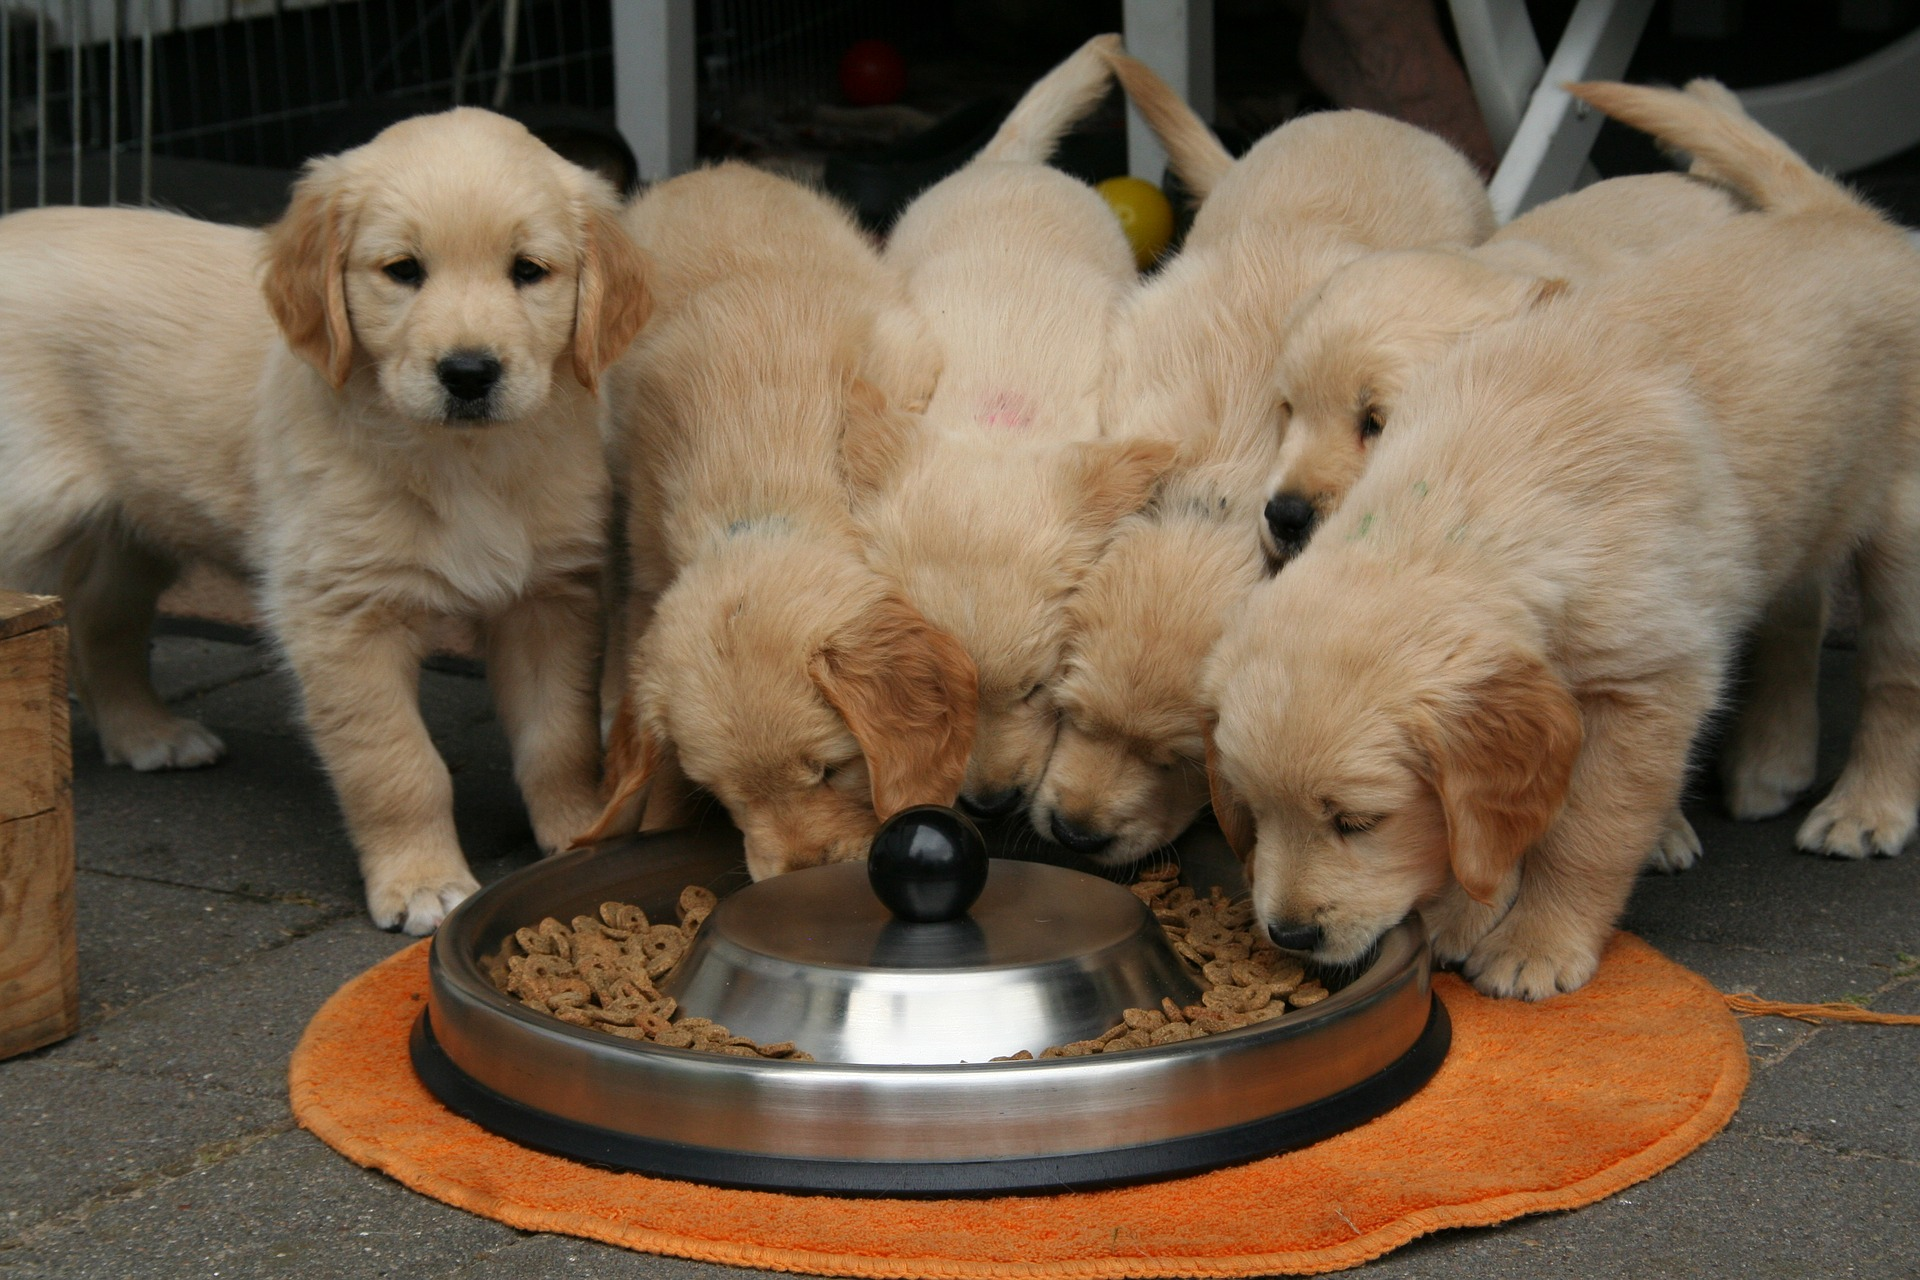 What should you feed your puppy?